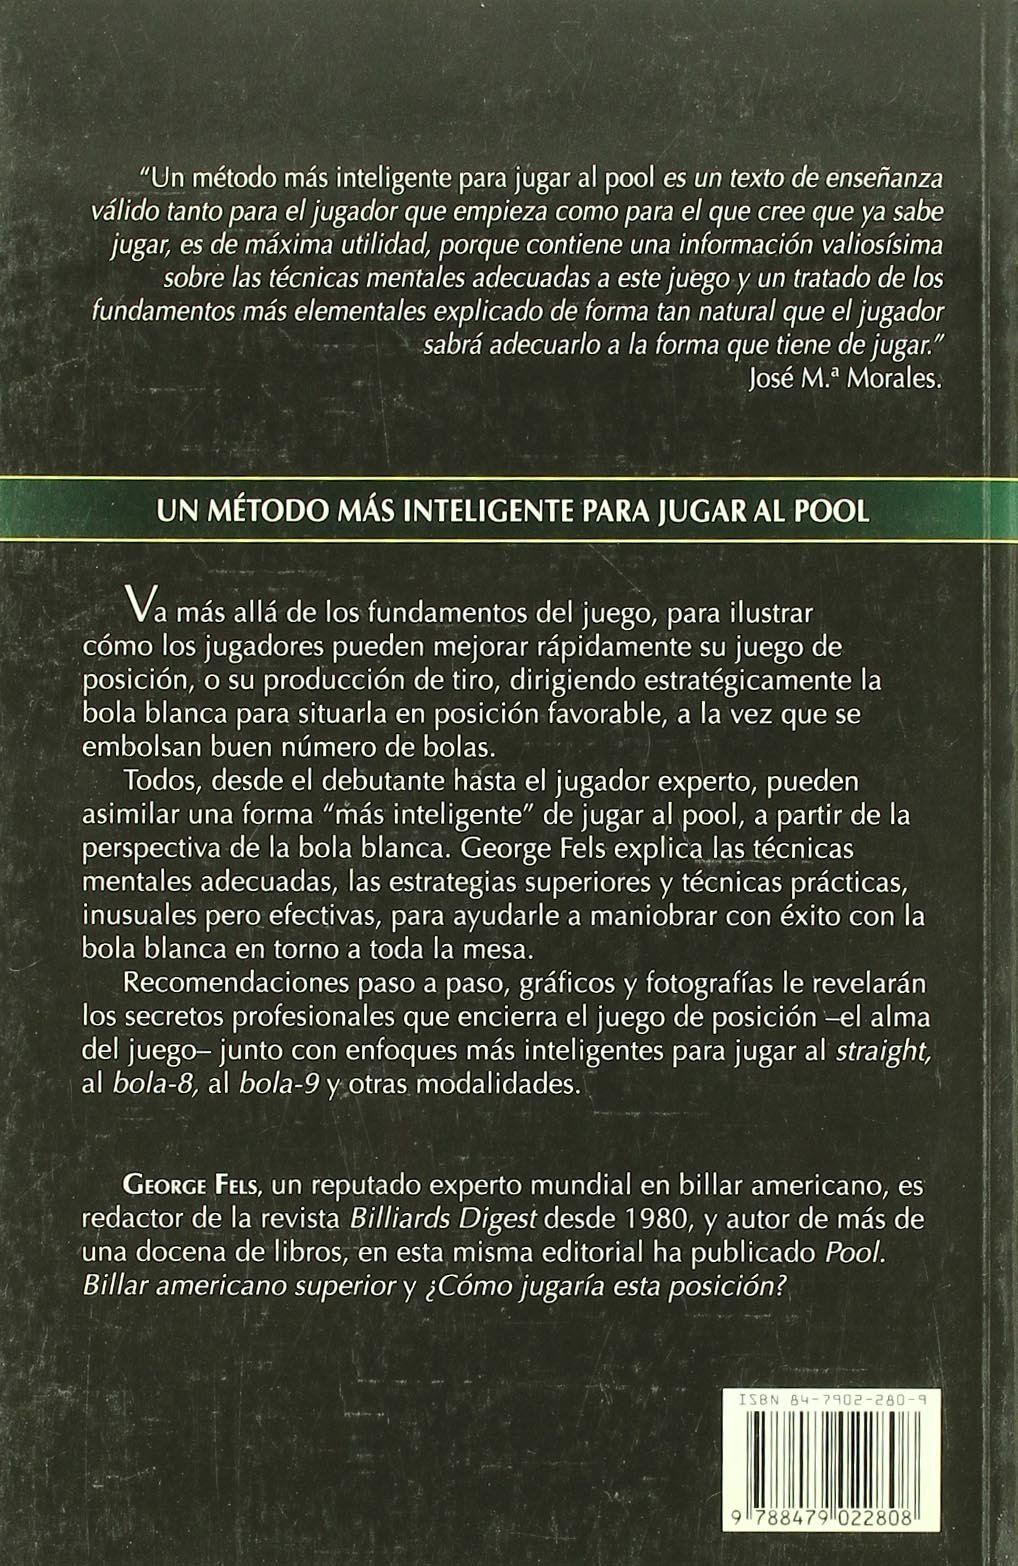 Un Metodo Mas Inteligente Para Jugar Al Pool: Amazon.es: Feels, George: Libros